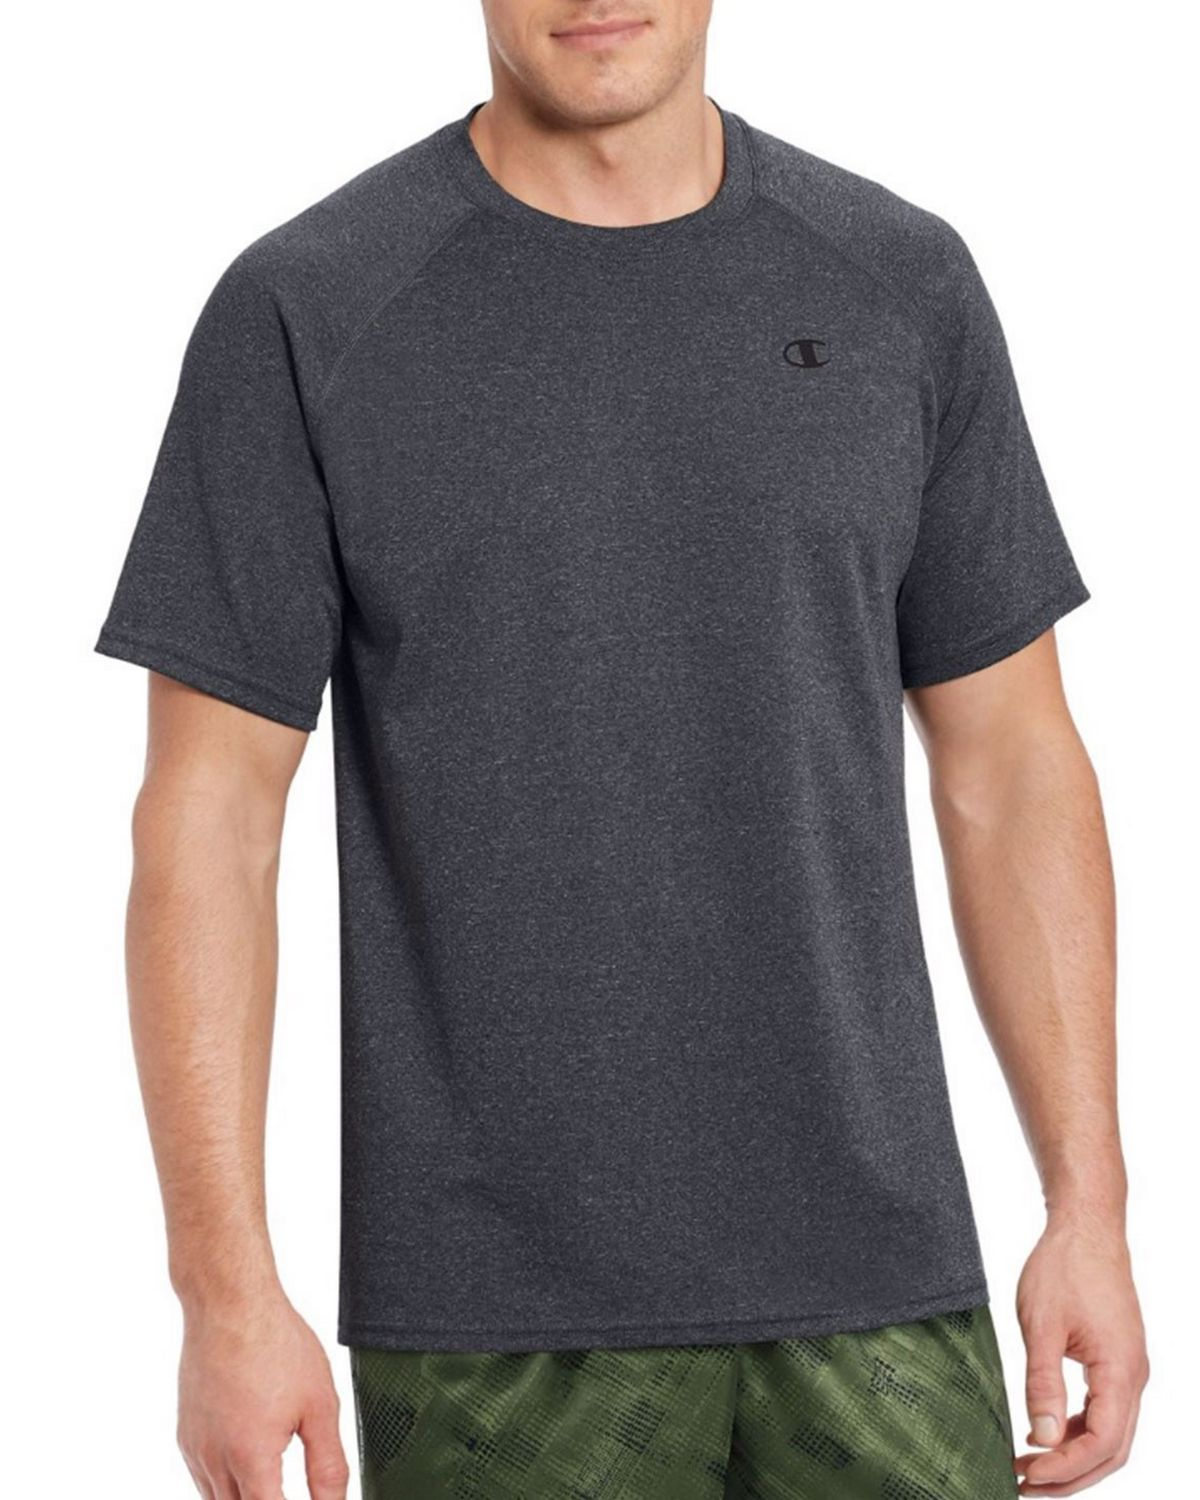 Champion T0881 Vapor Mens Tee - Granite Heather - XL T0881